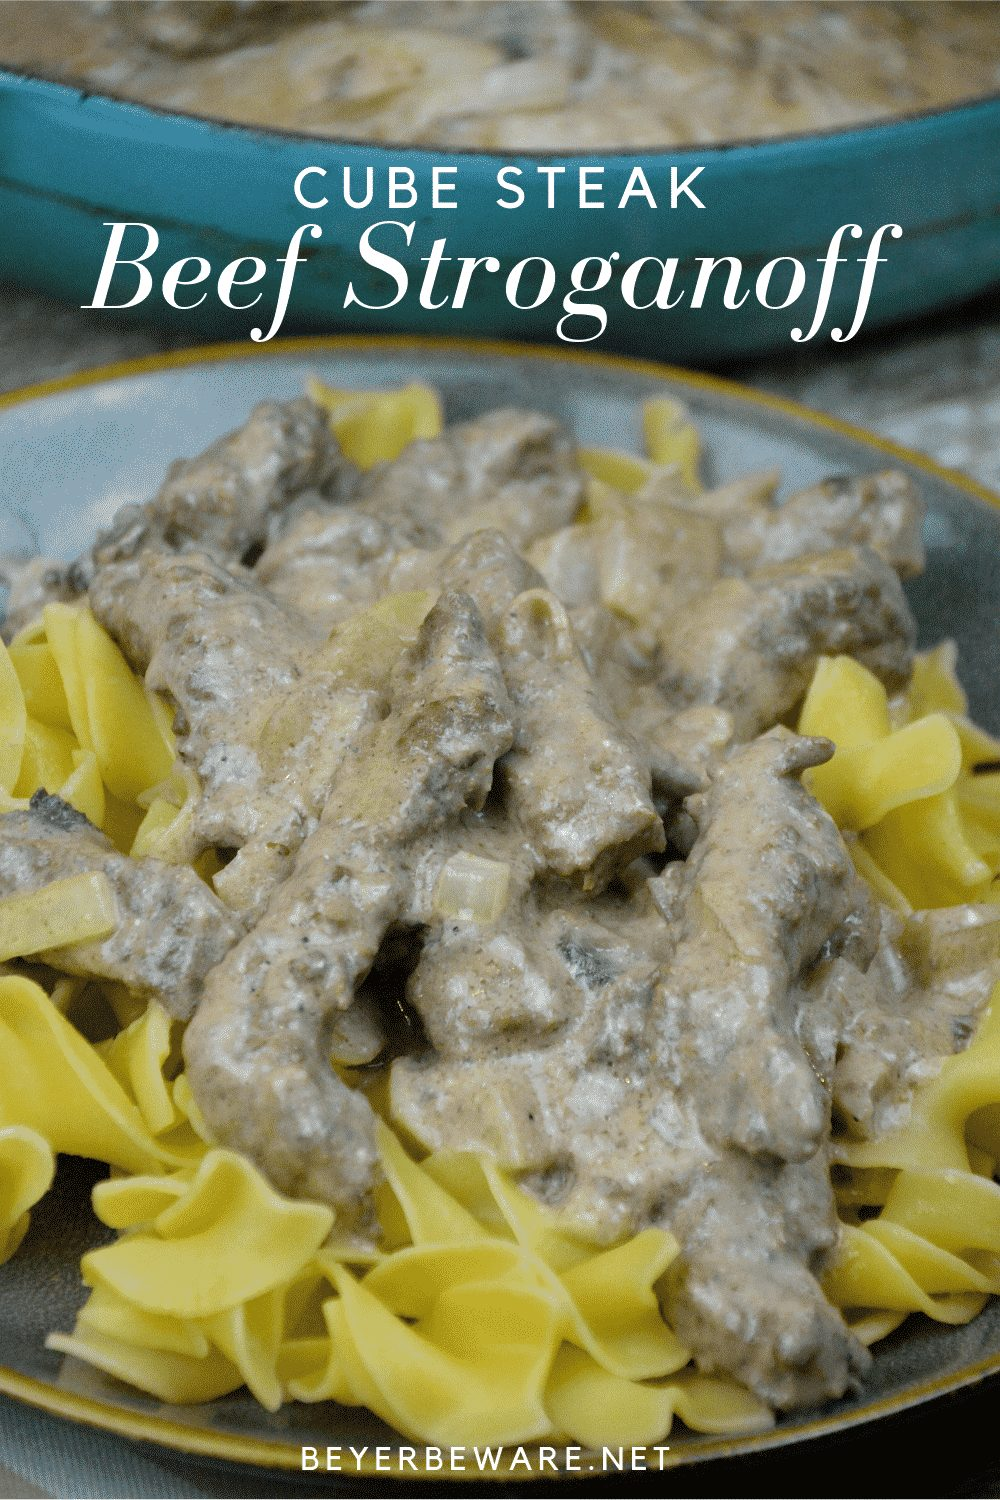 Cube steak beef stroganoff recipe is one that is made gluten-freeand can be served over noodles or rice for your family while it is also great over cauliflower rice for a low-carb beef stroganoff. #Lowcarb #Beef #CubeSteaks #EasyDinner #DinnerRecipes #Recipes